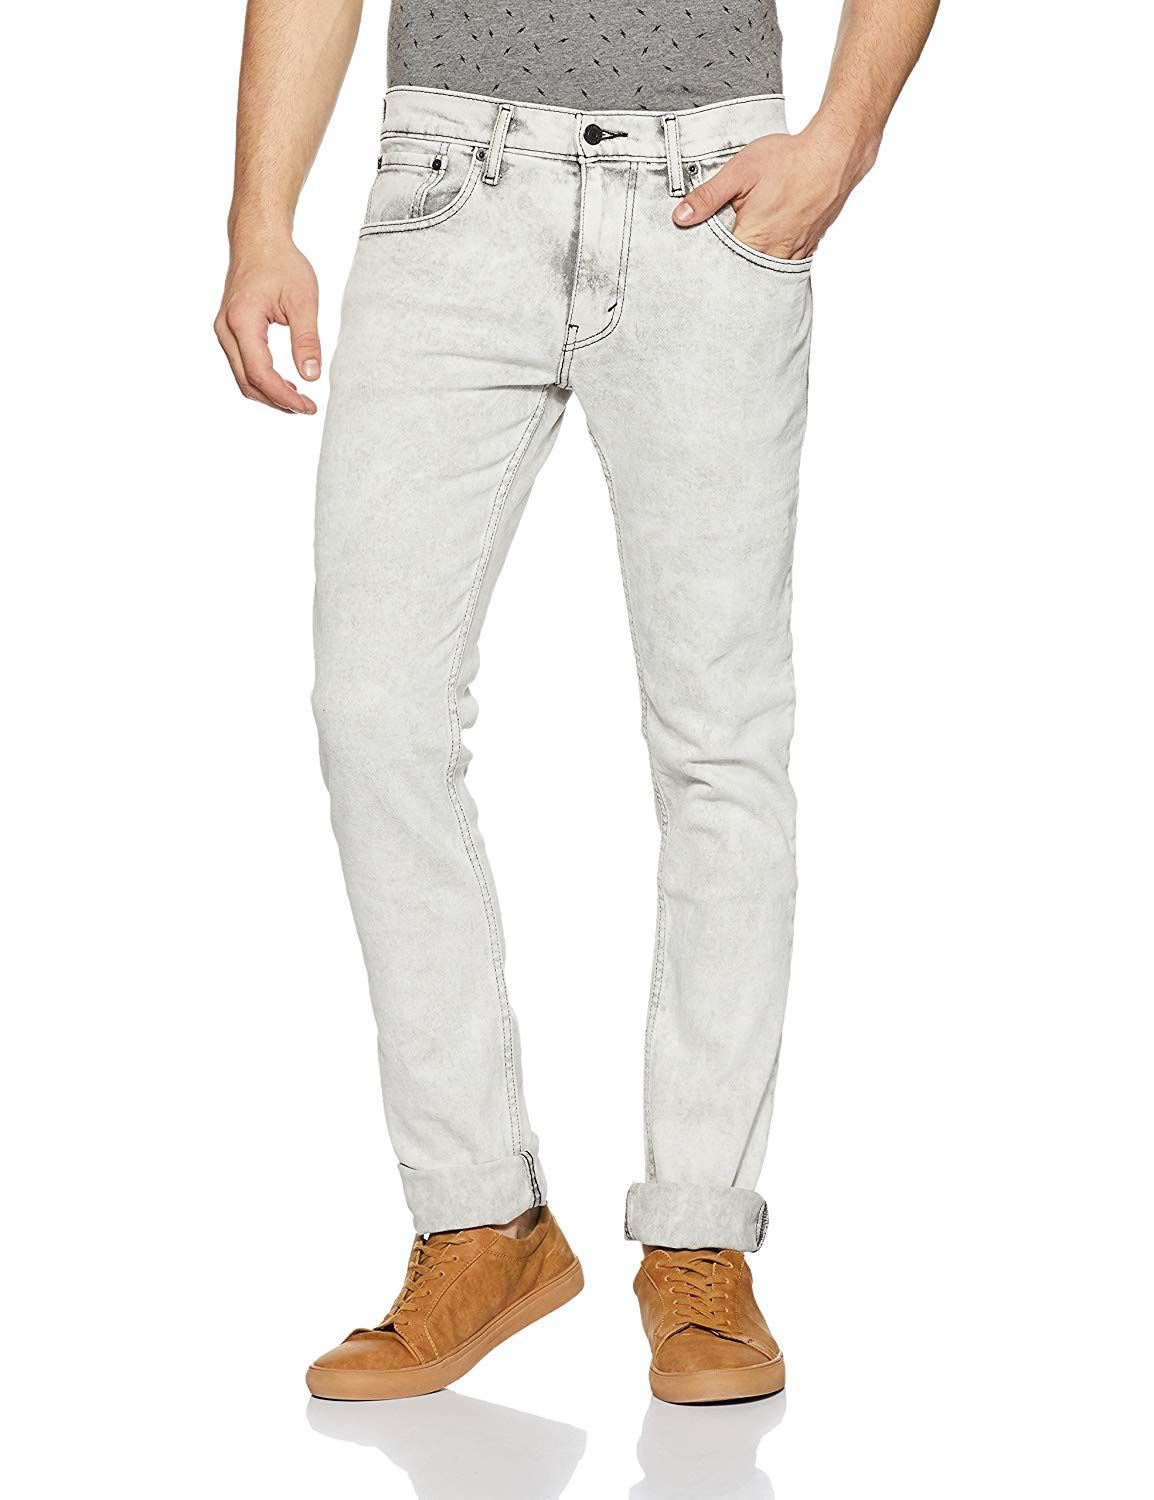 e0774791be797 Levi's Men's (65504) Skinny Fit Jeans: Amazon.in: Clothing ...